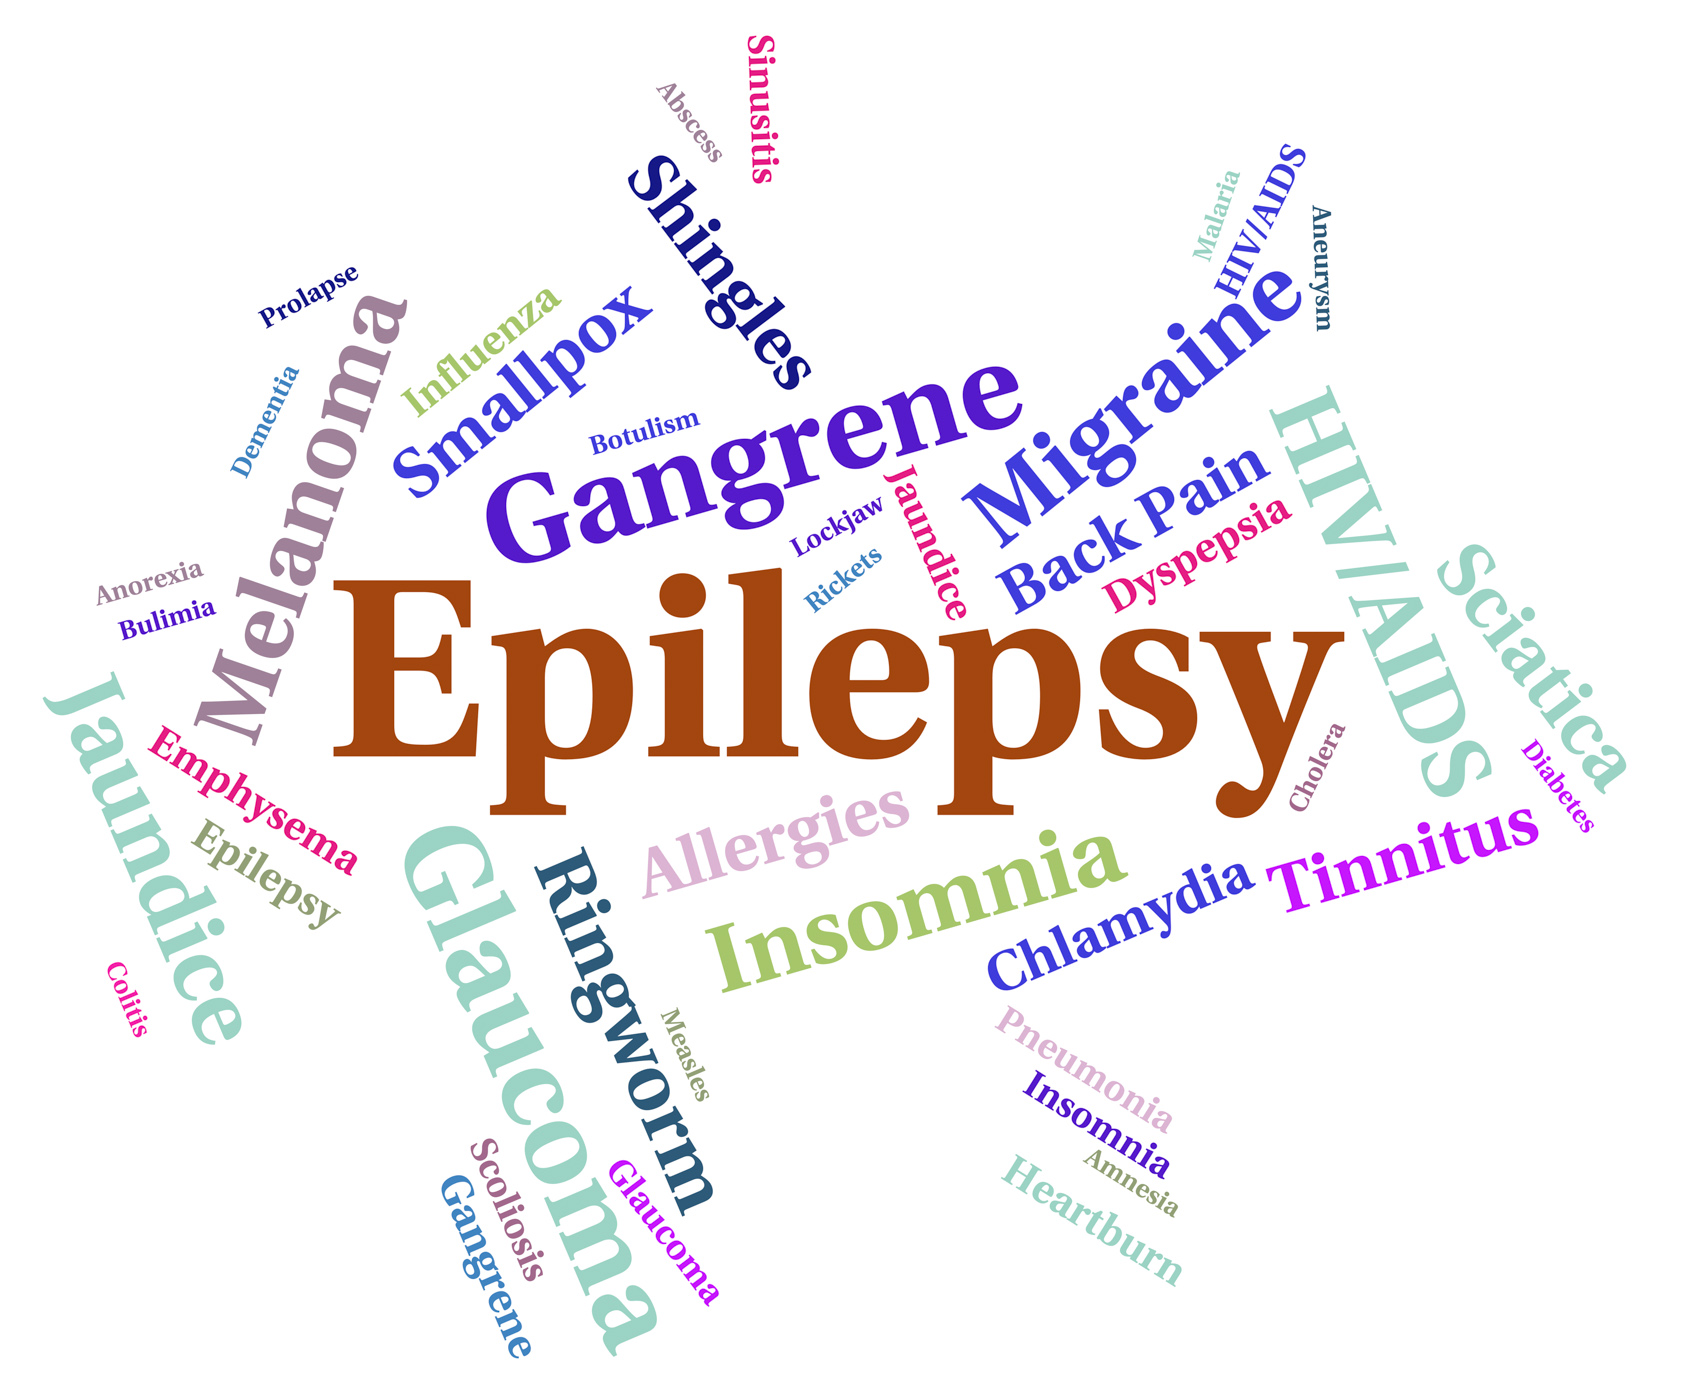 Epilepsy illness means poor health and afflictions photo